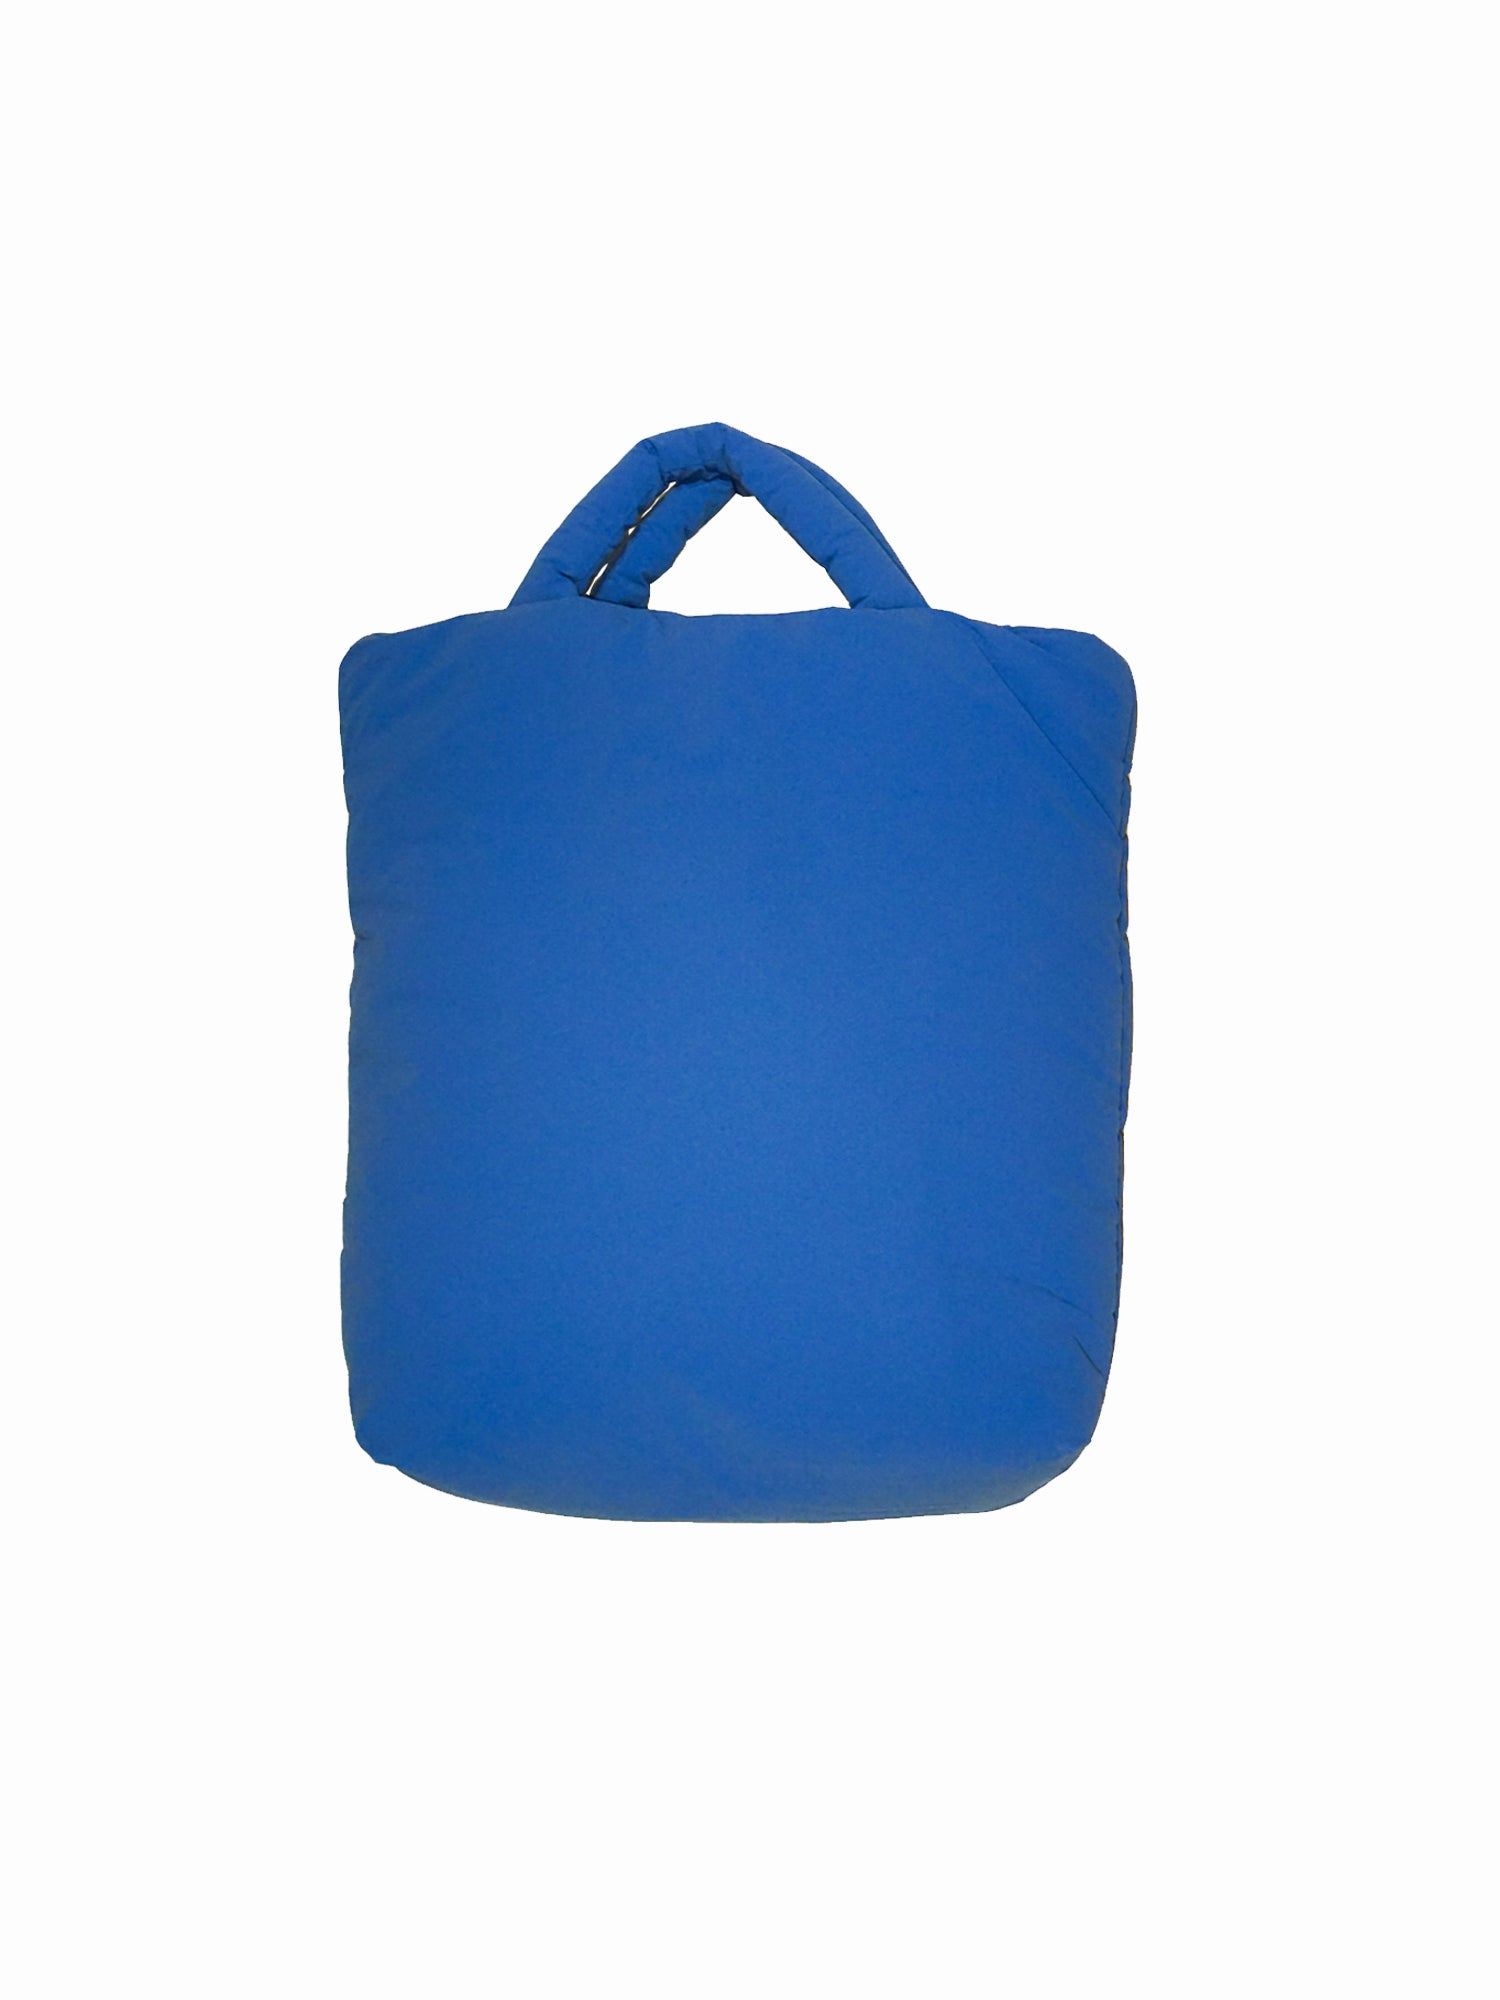 KASSL Editions Bag XL Pop Oil Electric Blue